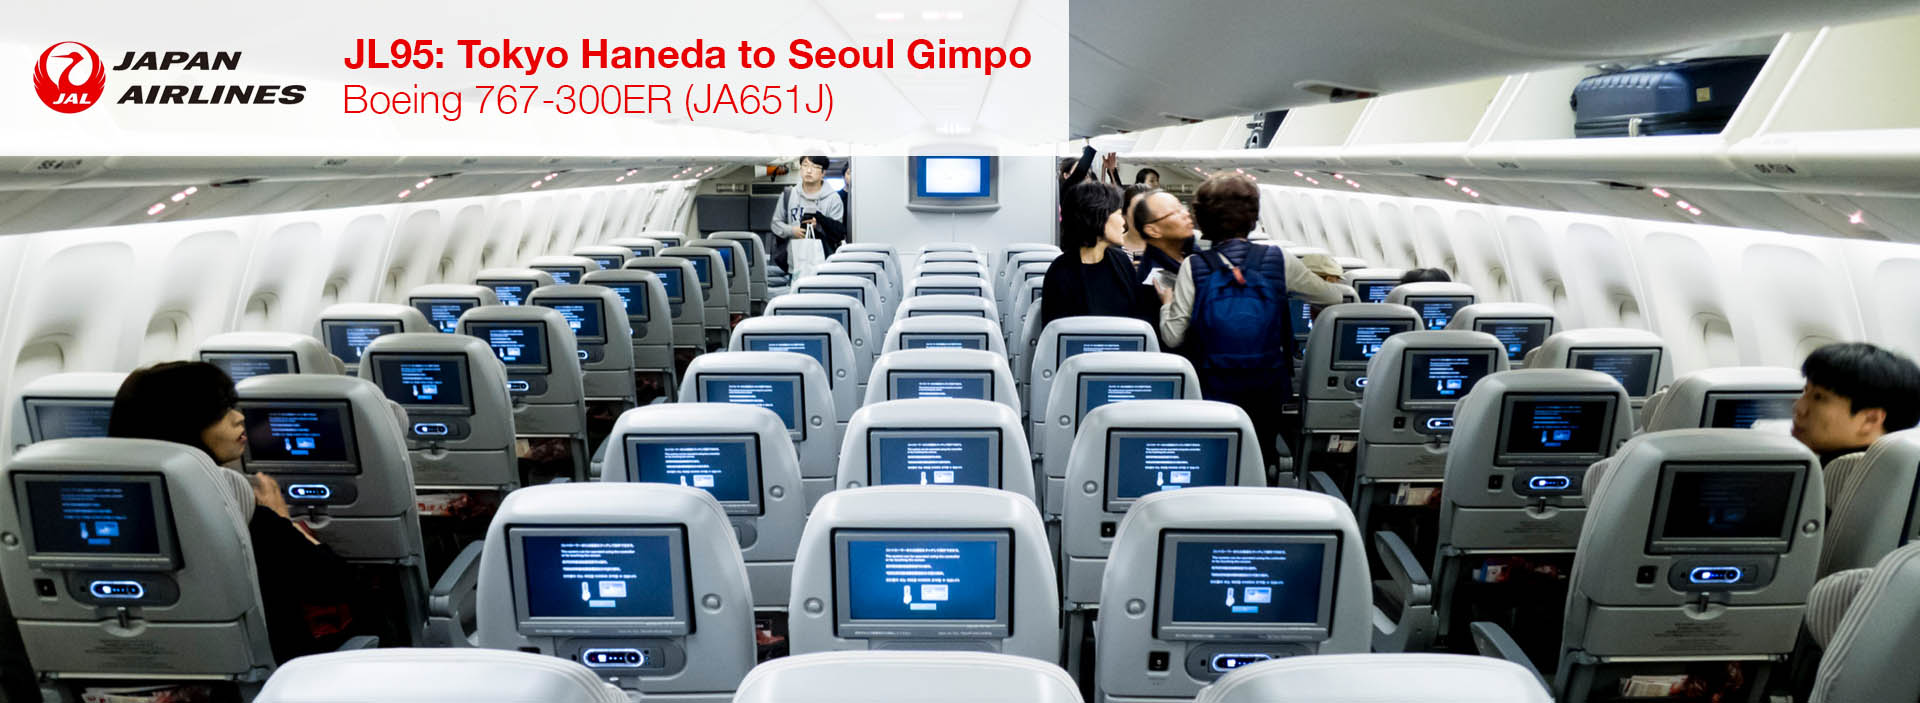 Flight Review: JAL 767-300ER Economy Class from Tokyo HND to Seoul Gimpo